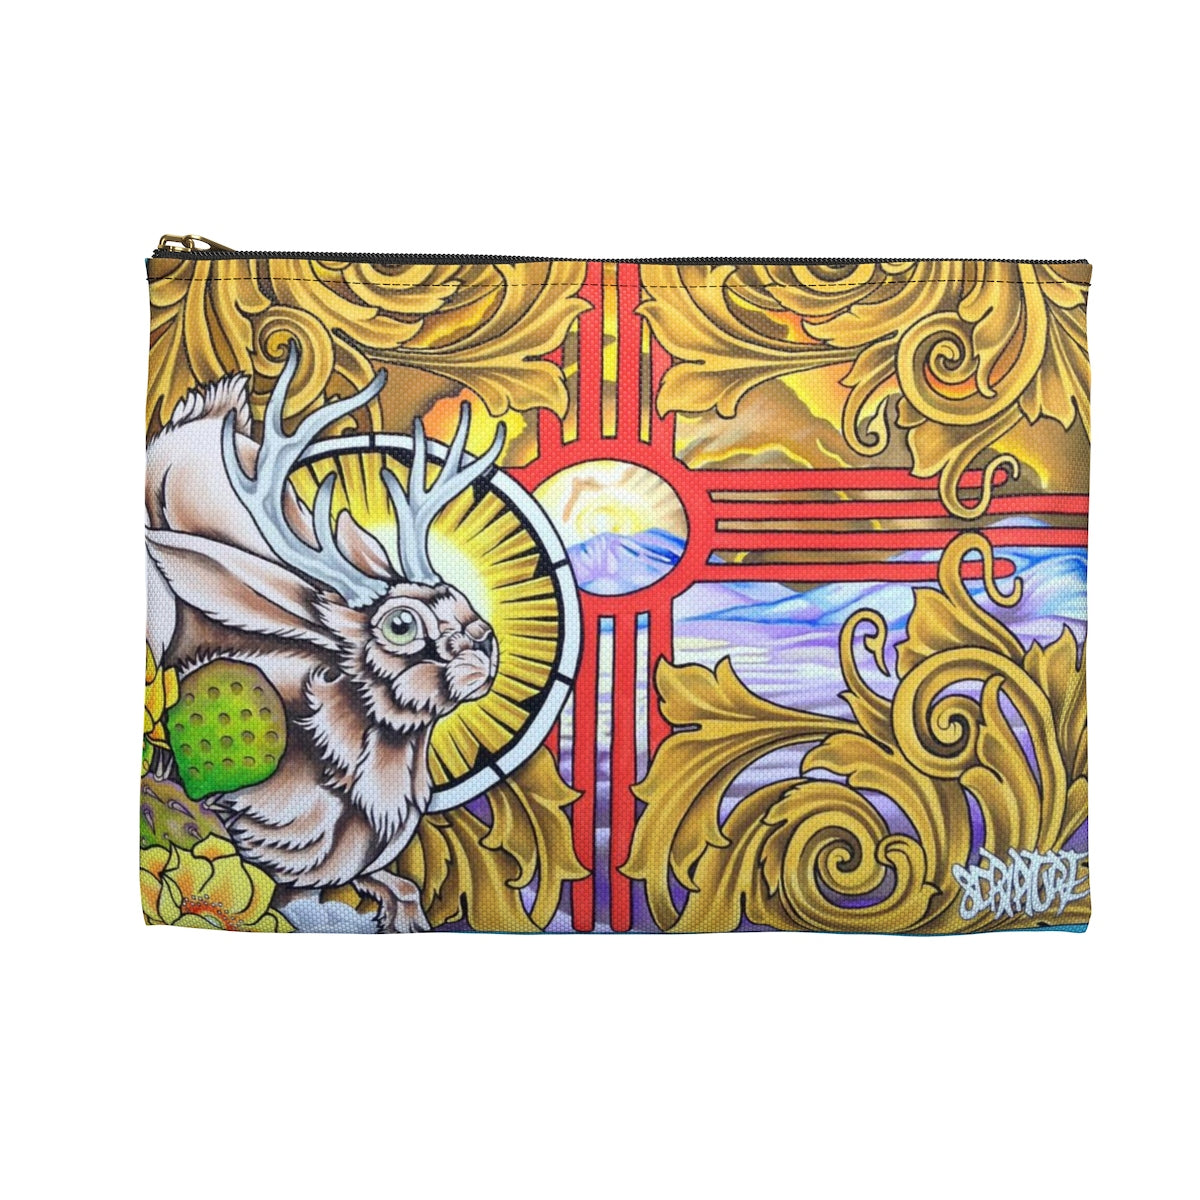 Zia Rabbit-Accessory Pouch